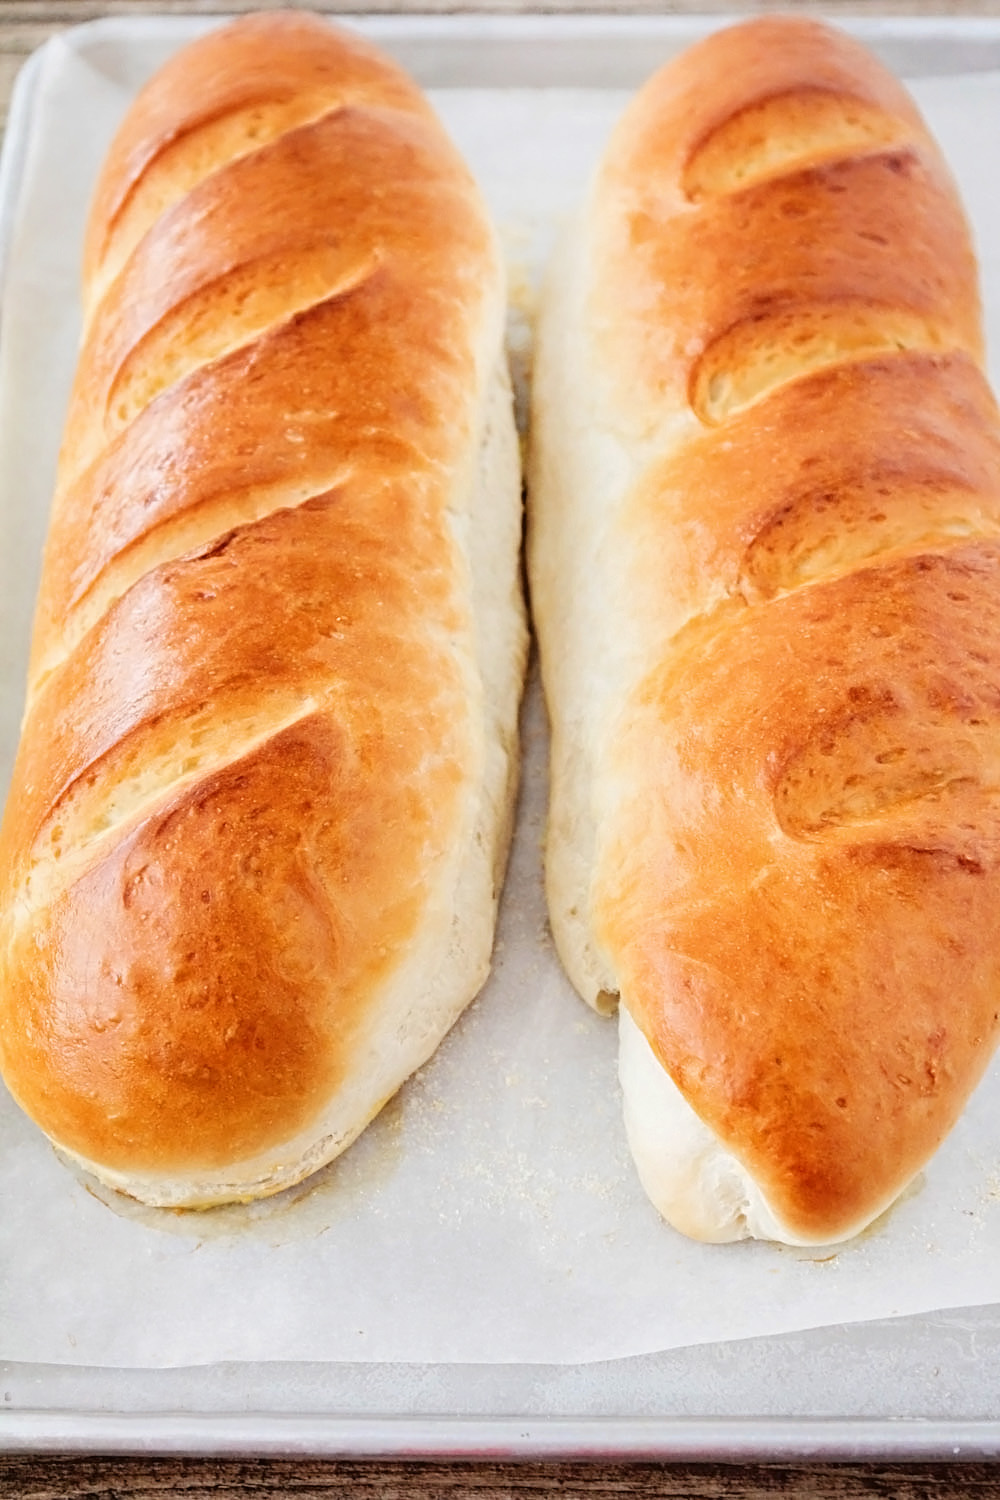 This soft and fluffy french bread is better than store-bought and so easy to make!